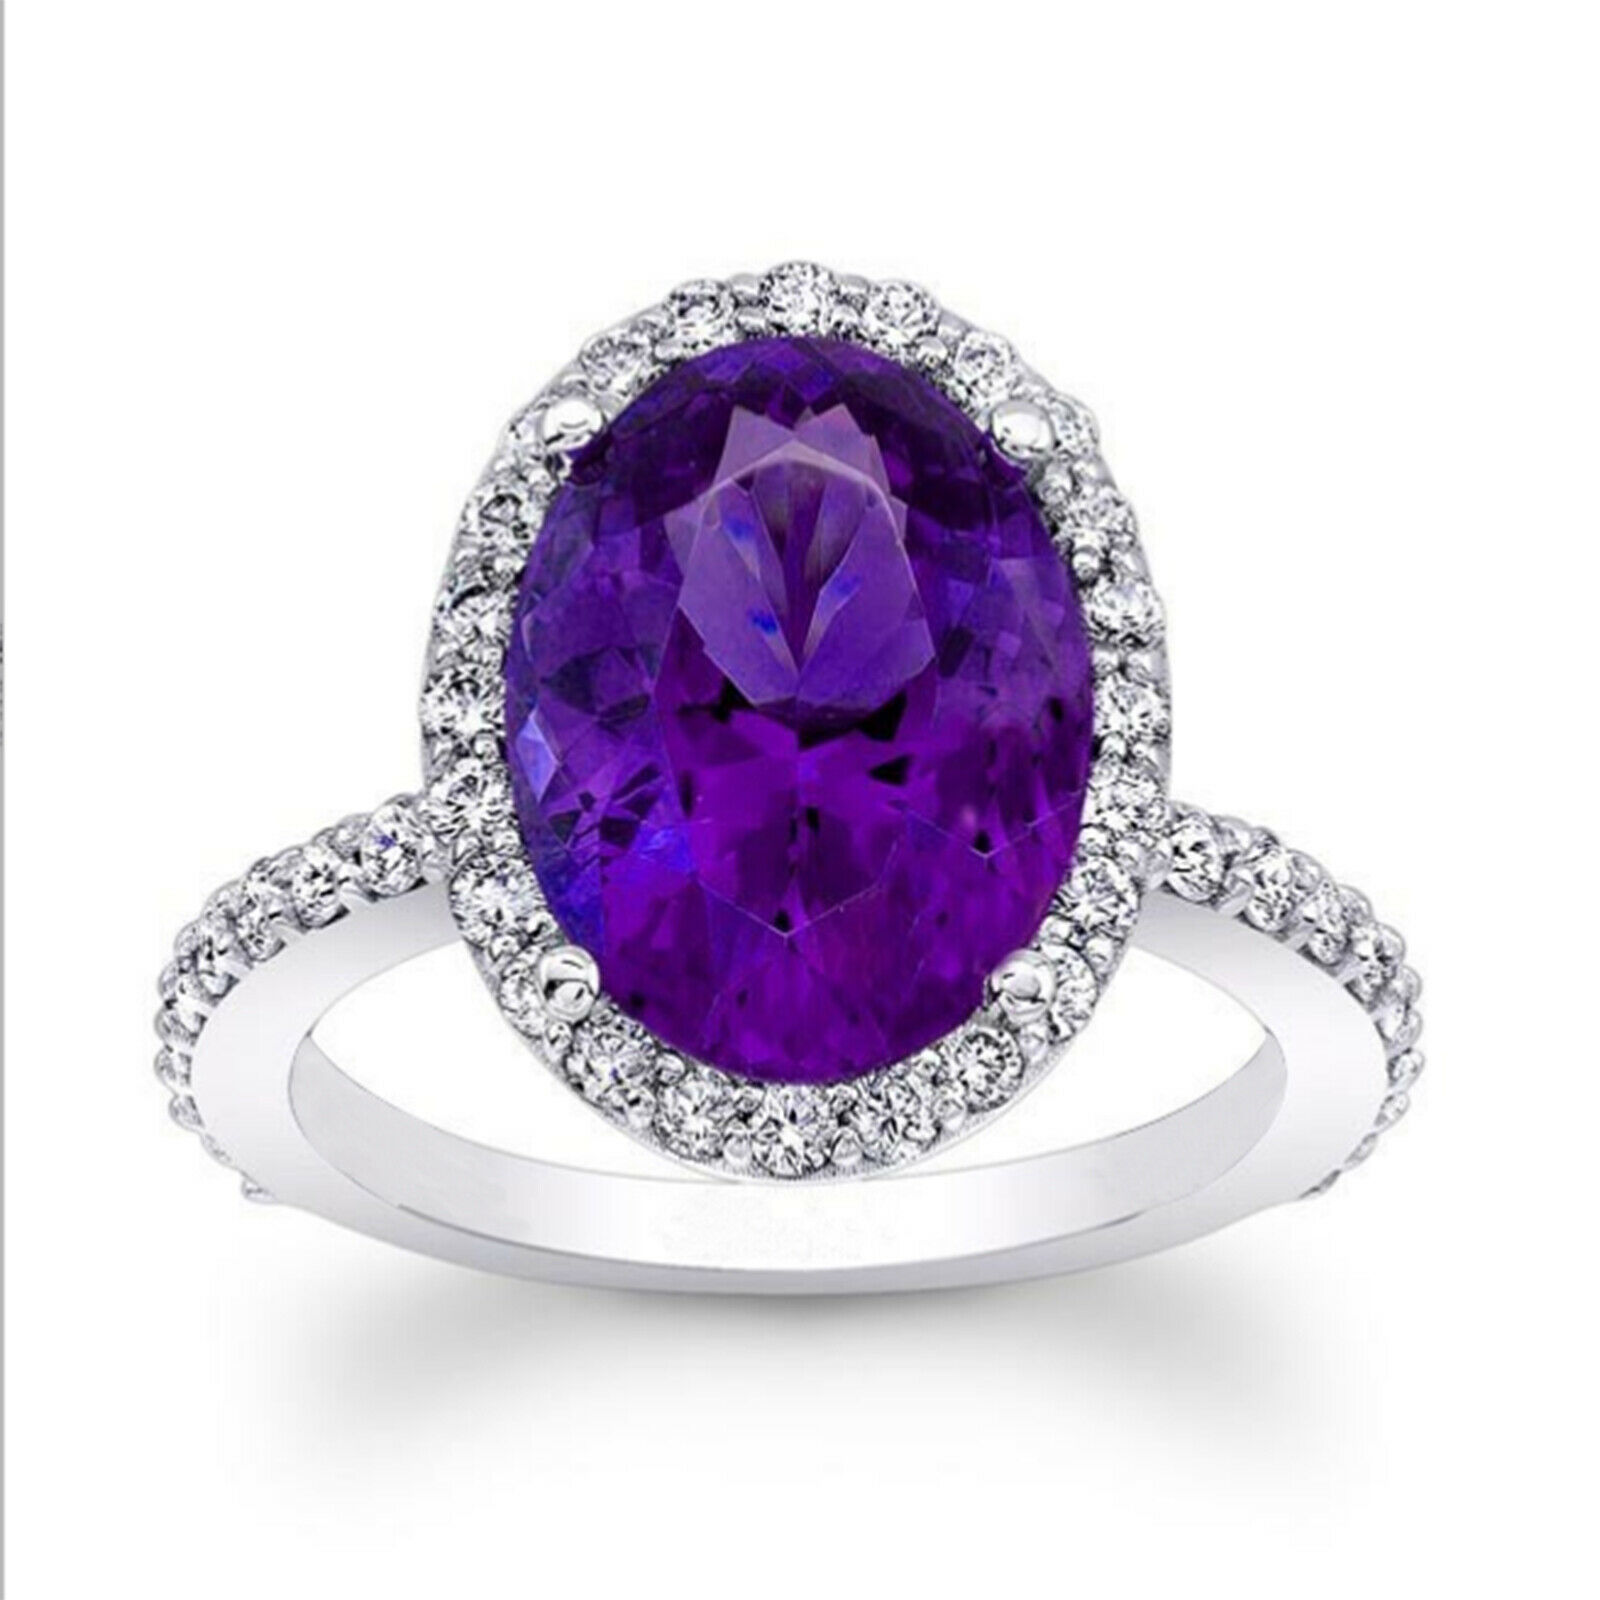 14K Solid White gold Oval 4.50 Ct Diamond Amethyst Wedding Ring Size 6 5 7 8